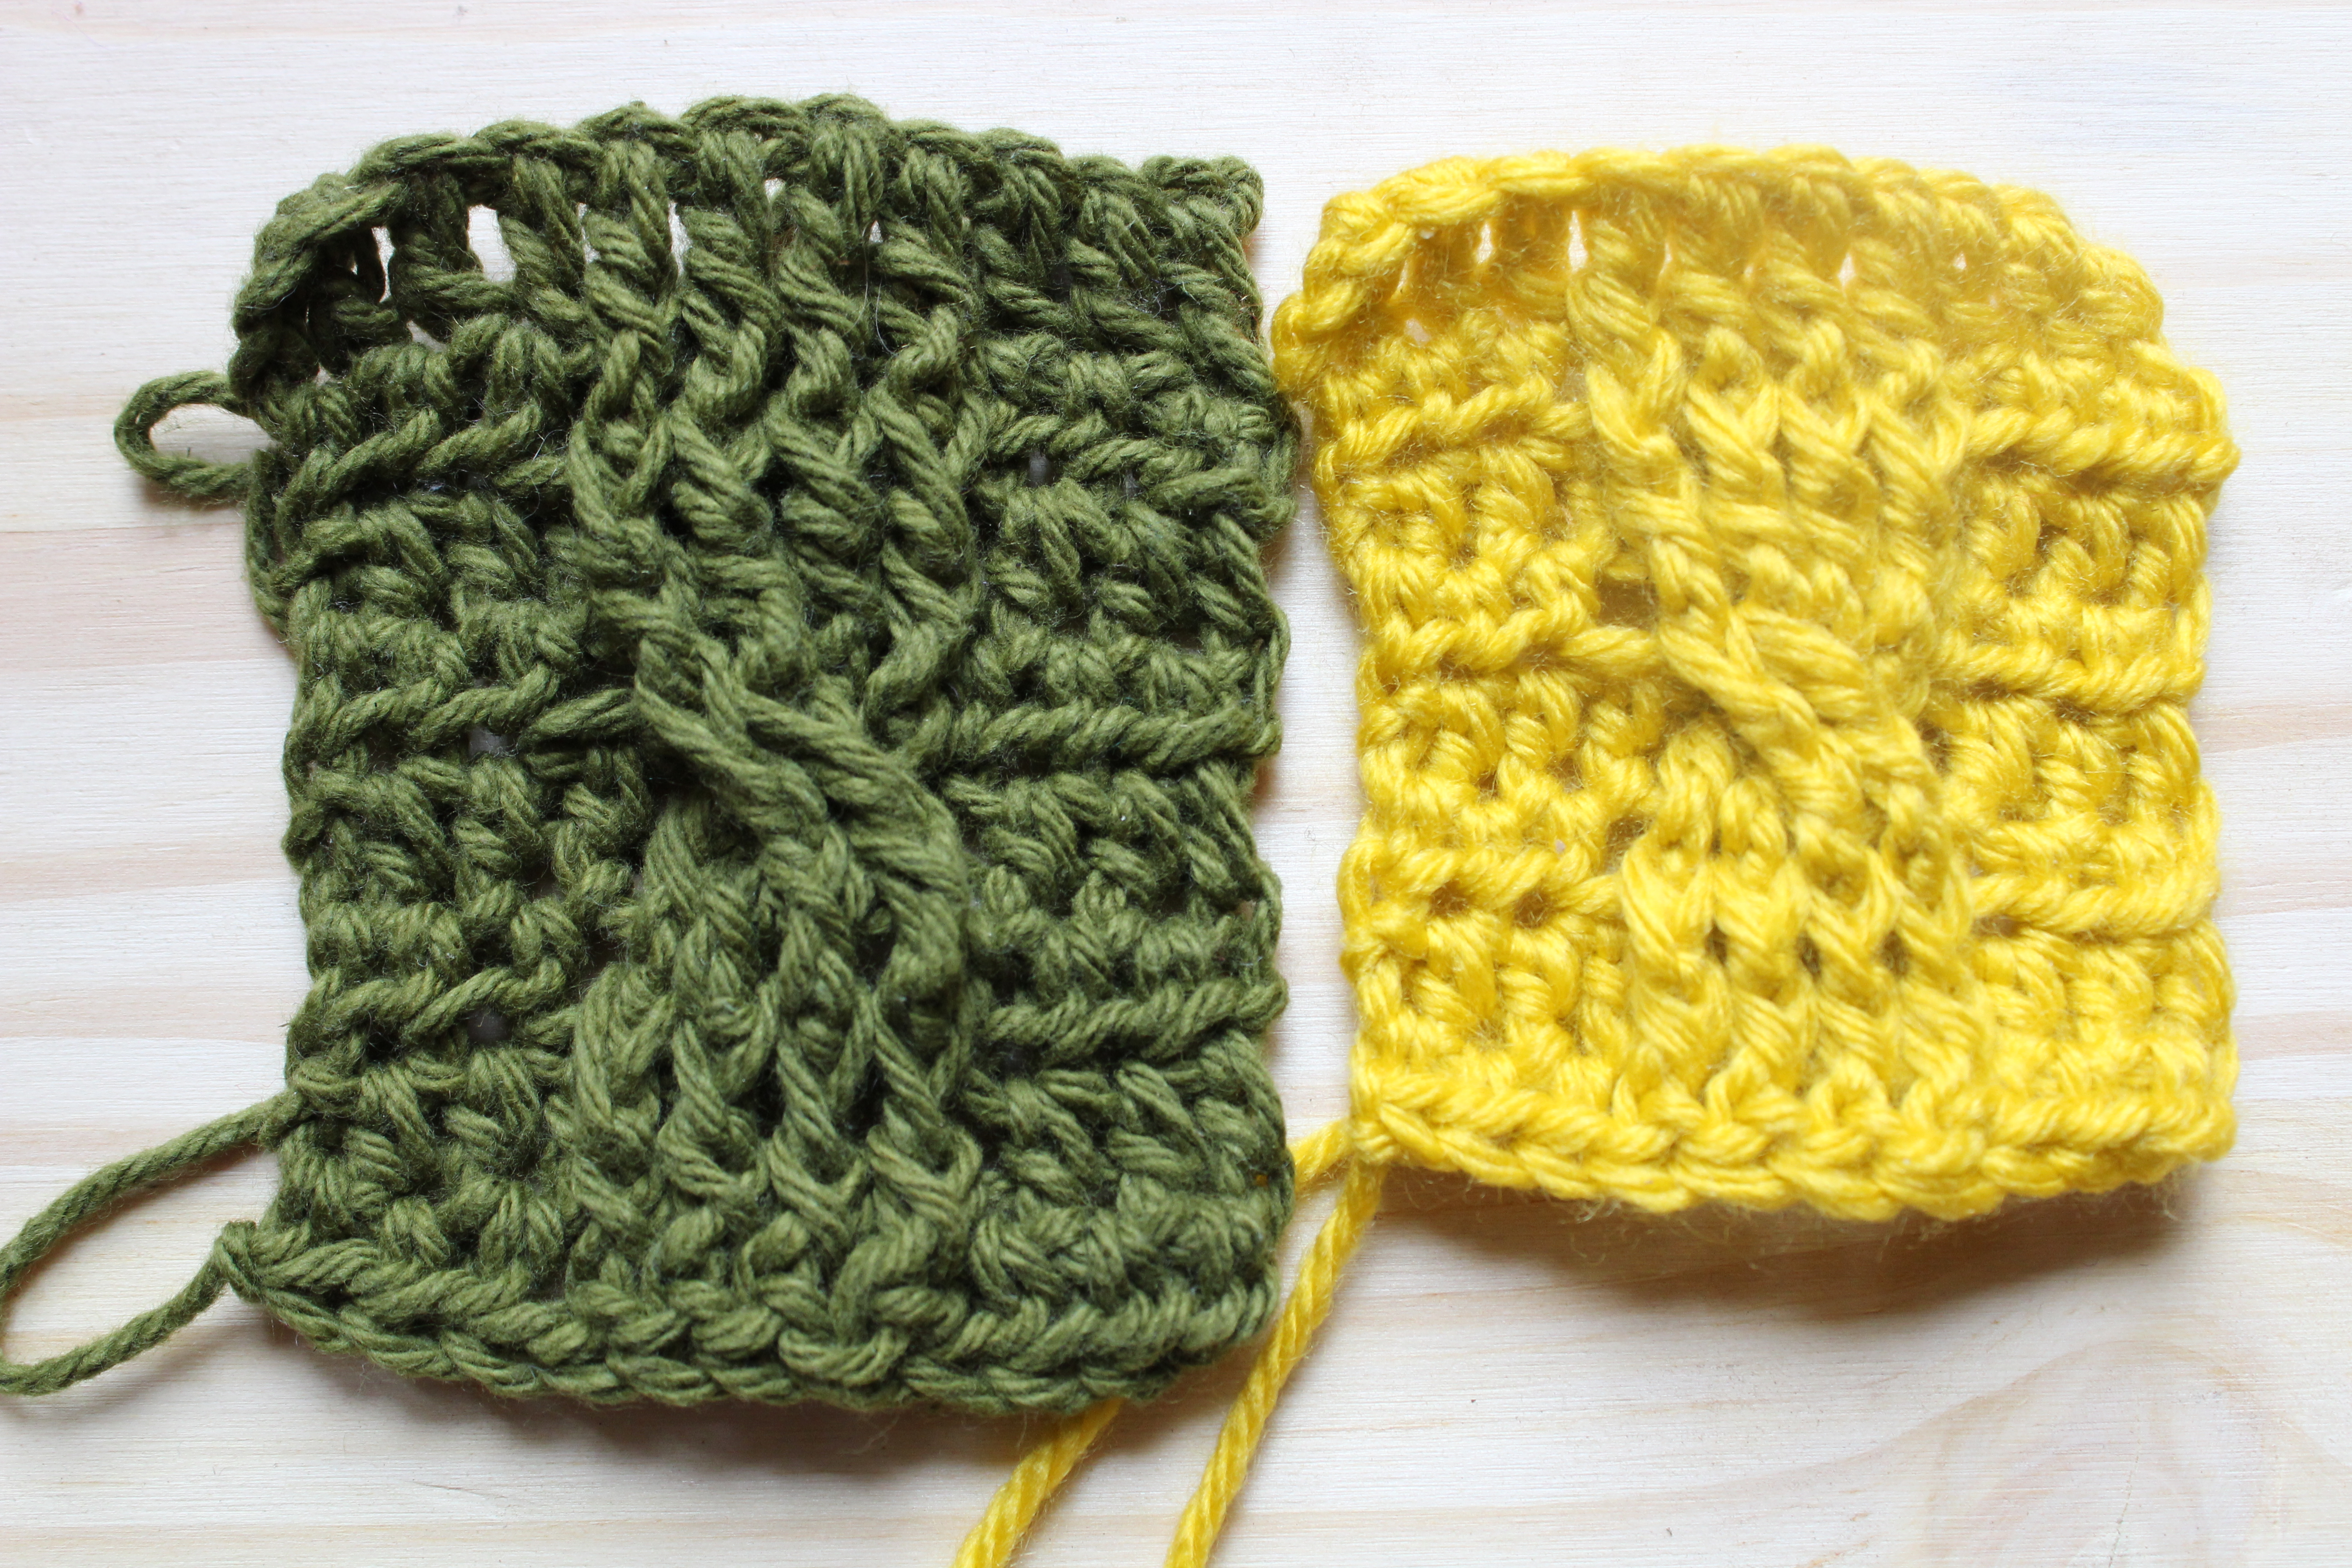 Left swatch: Lily sugar n' cream cotton; Right swatch: Knit Pick's Mighty Stitch